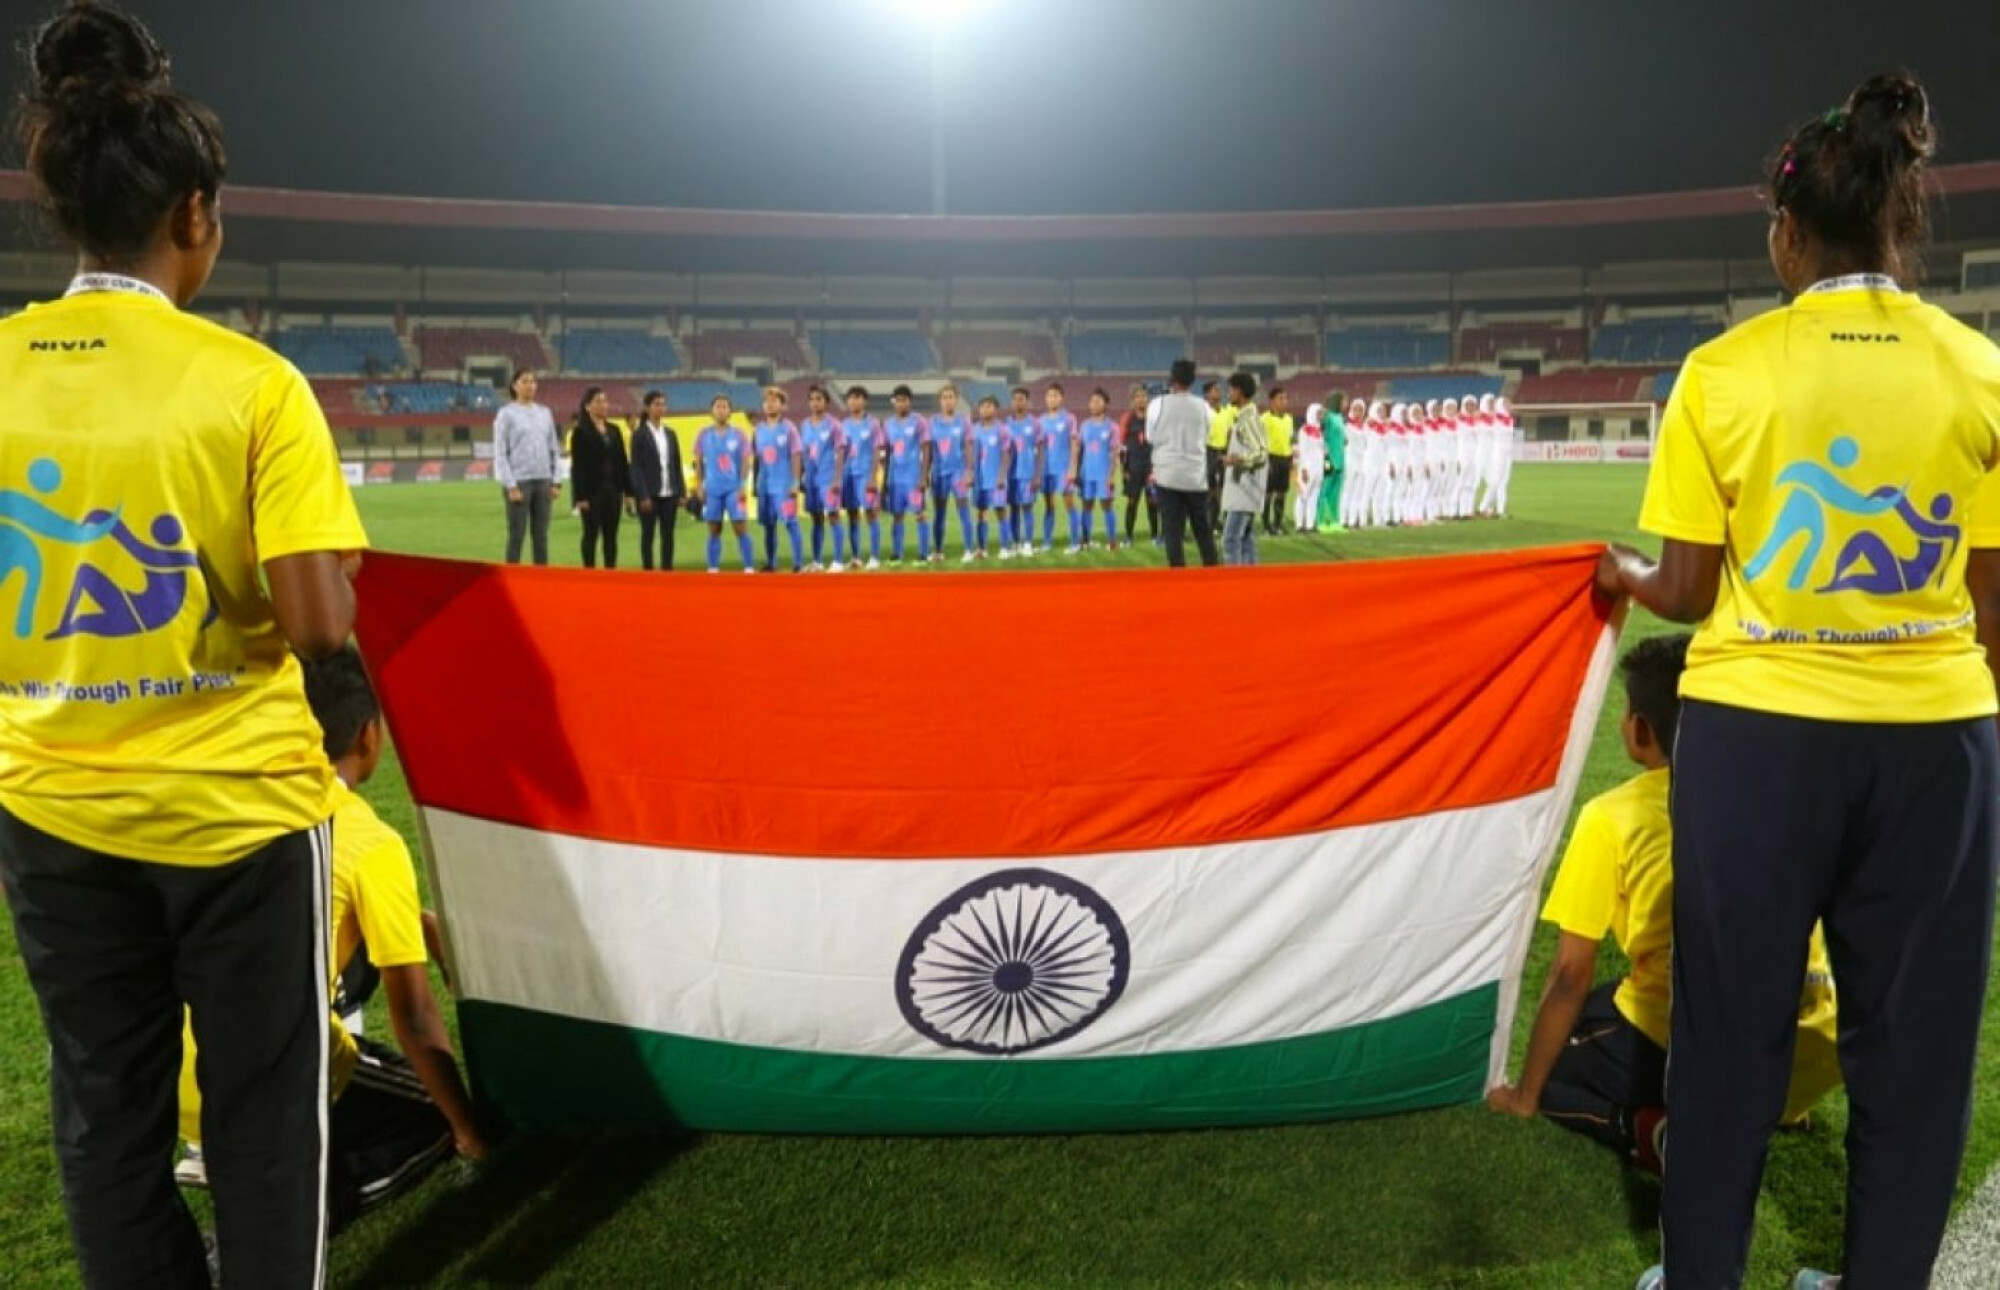 Hero Gold Cup 2019: India begin well with win over Iran.